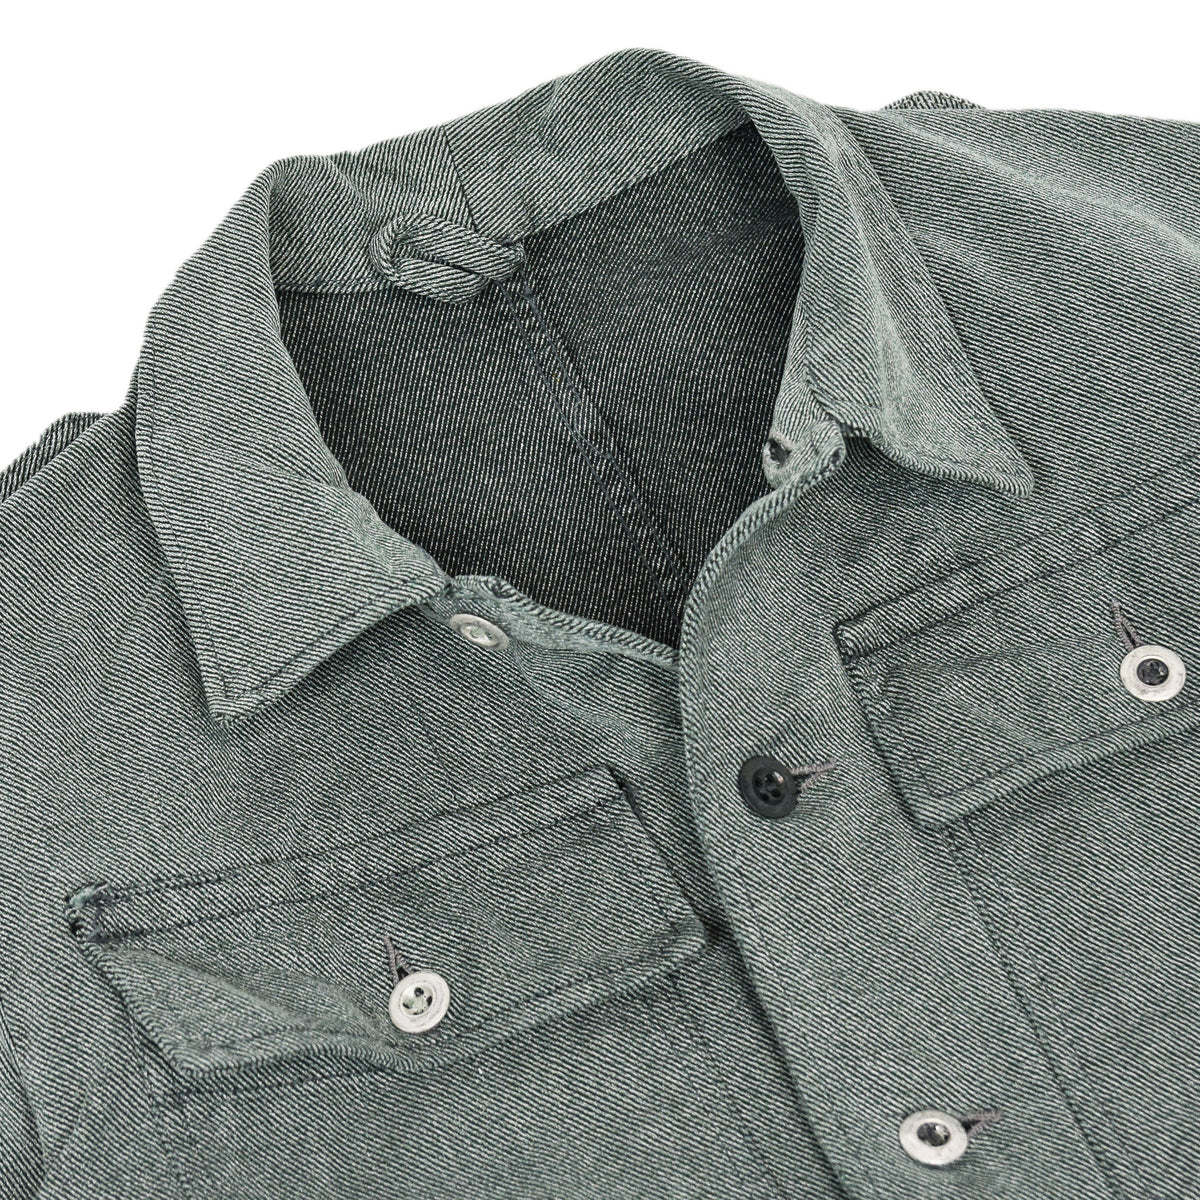 Vintage 60s Swiss Army Salt & Pepper Denim Worker Chore Jacket S